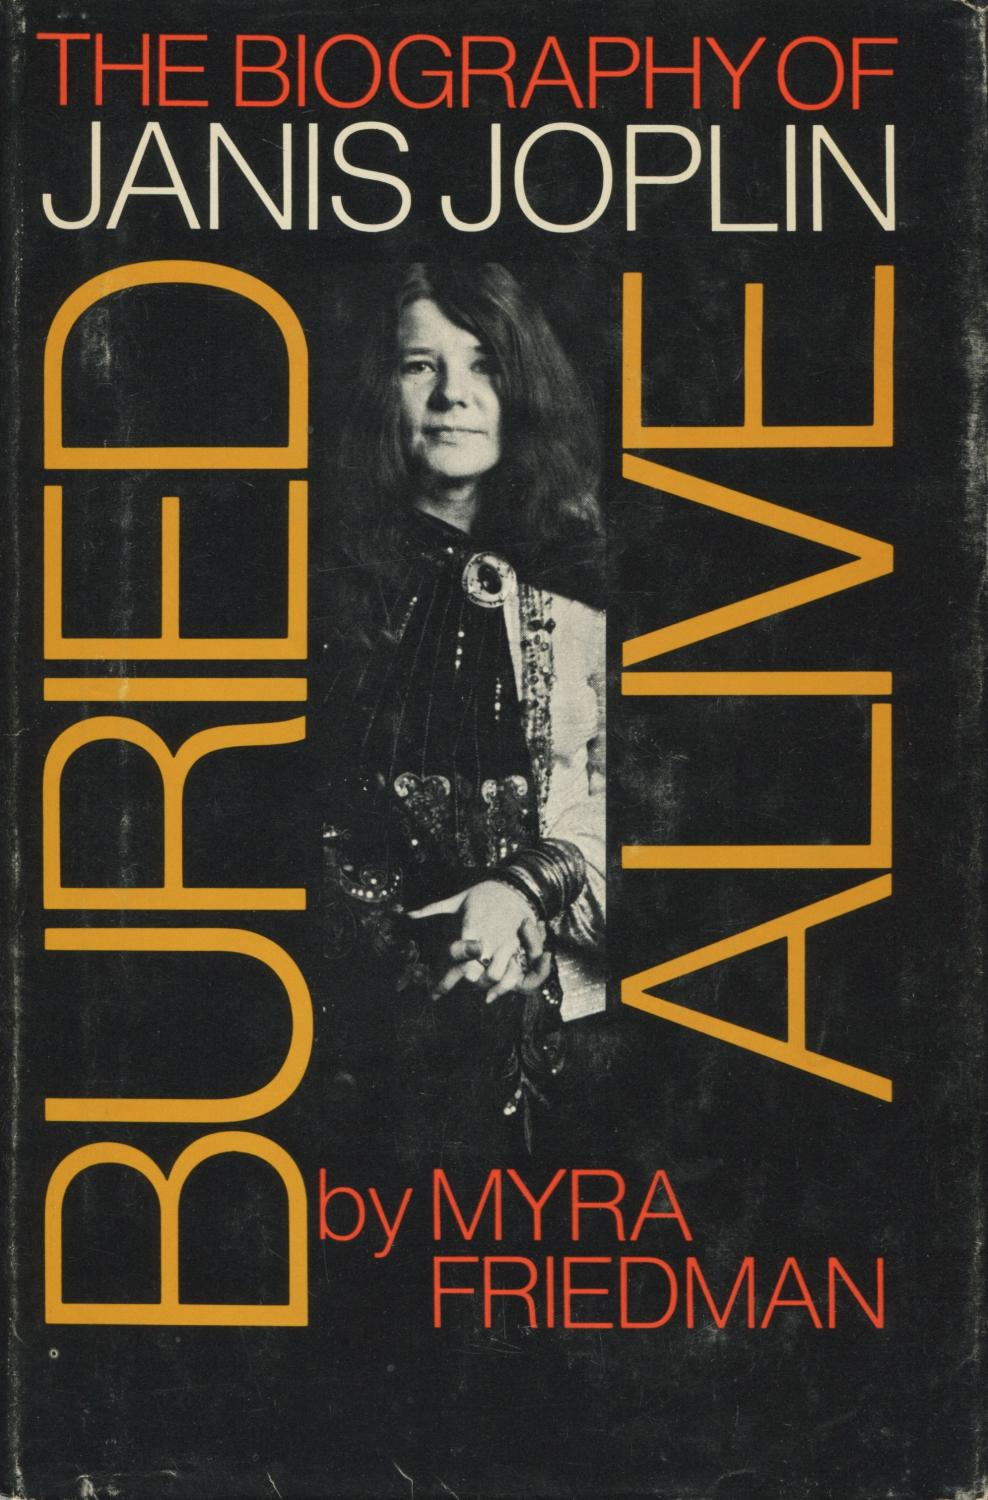 cover of Buried Alive The Biography of Janis Joplin by Myra Friedman